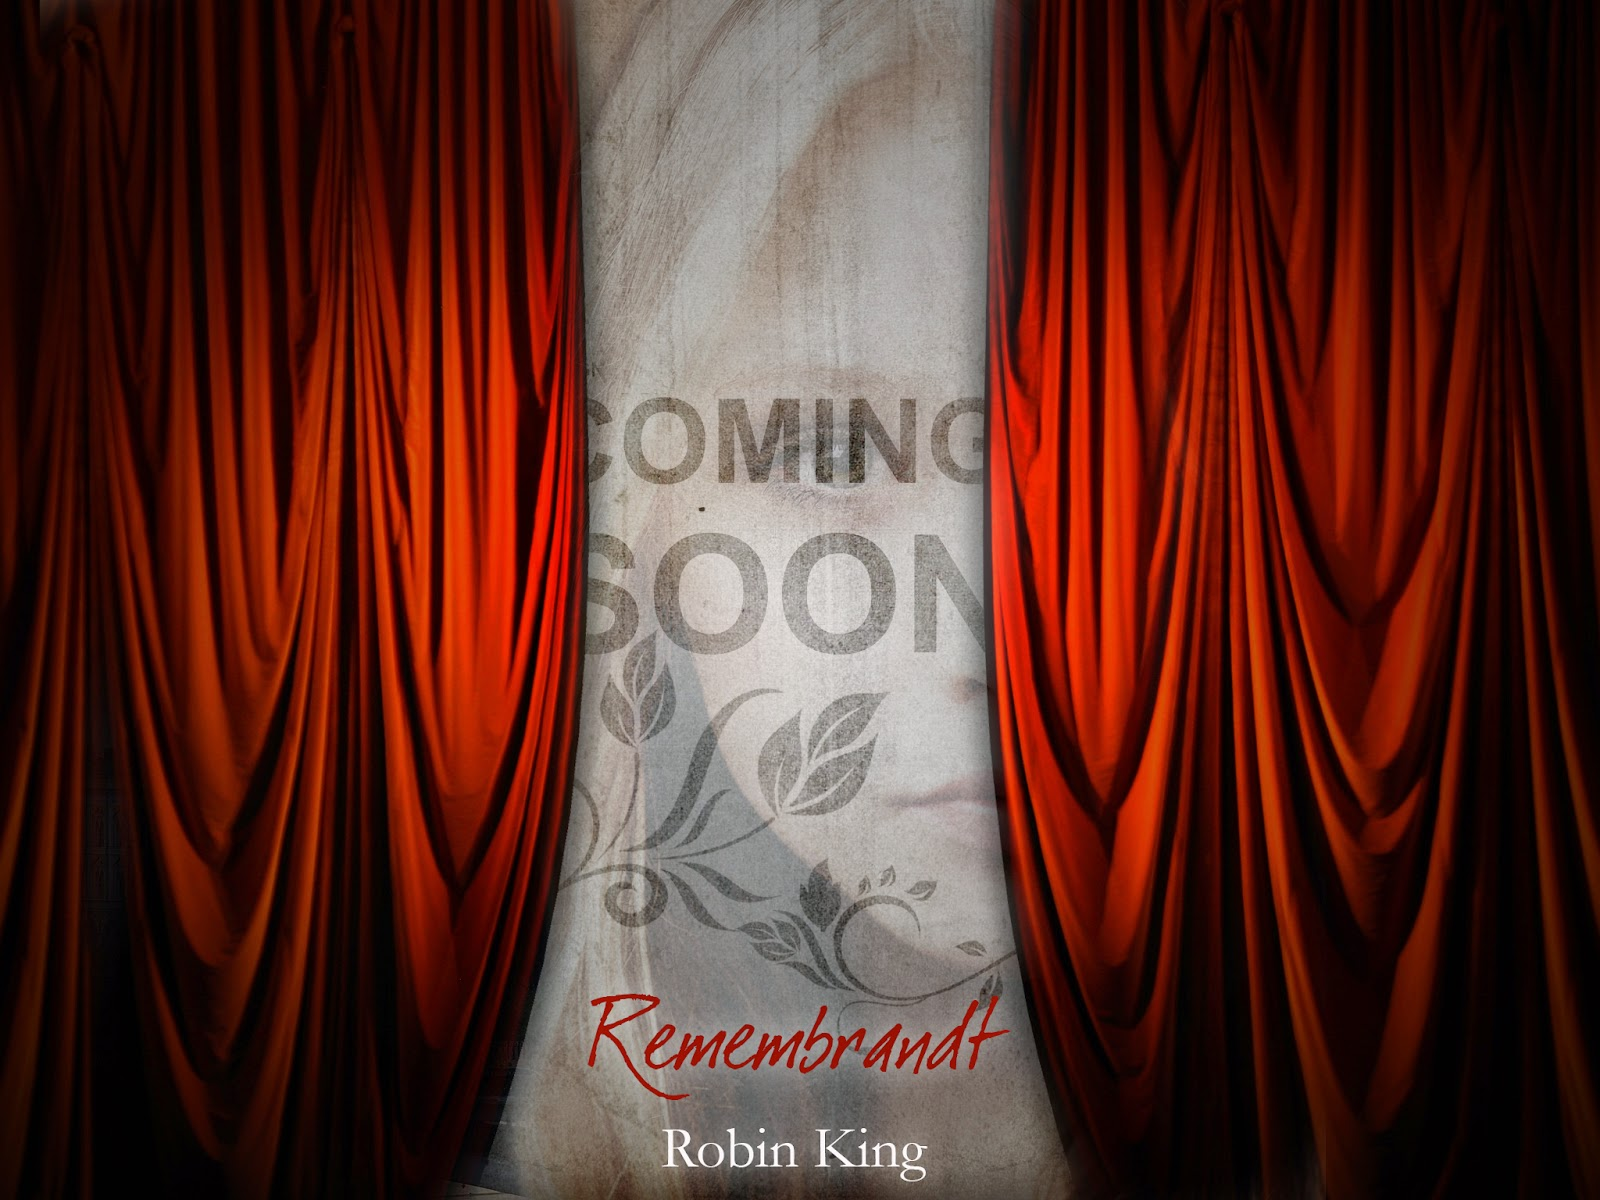 Partial cover reveal of Remembrandt by Robin King